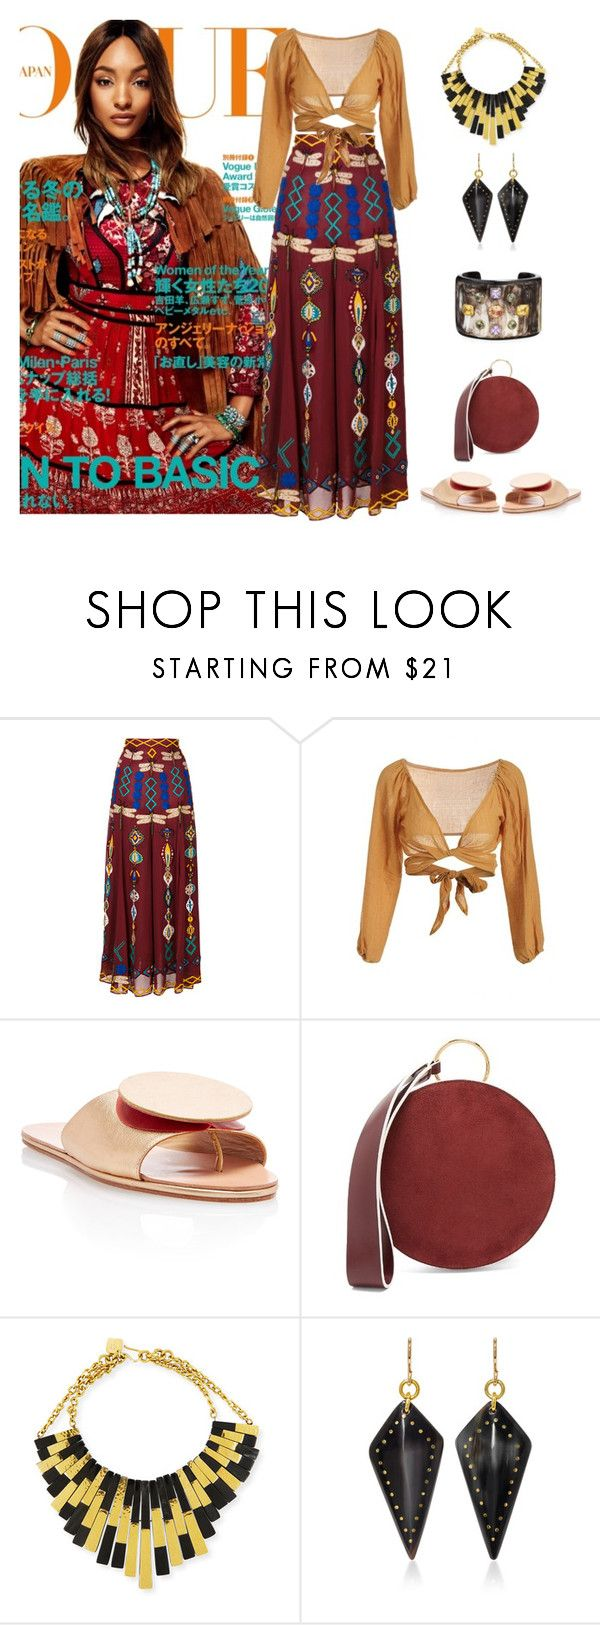 """""""Bohemian Dream"""" by karen-galves ❤ liked on Polyvore featuring Dunn, MICHEL KLEIN, The Palatines, Diane Von Furstenberg and Ashley Pittman"""